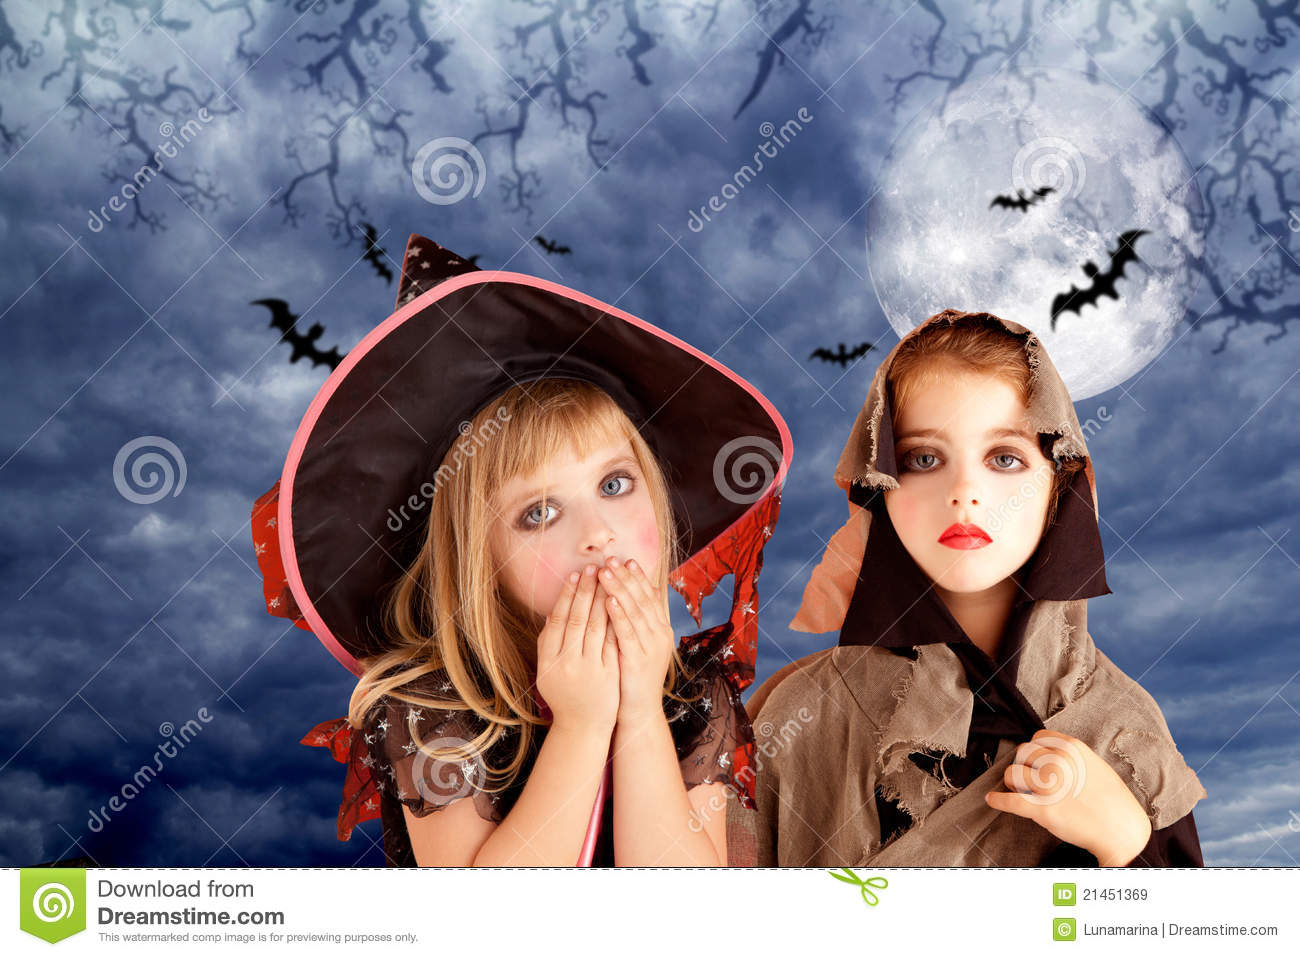 Kids at night with moon royalty free stock photography image - Halloween Costumes Kid Girls On Moon Night Royalty Free Stock Images